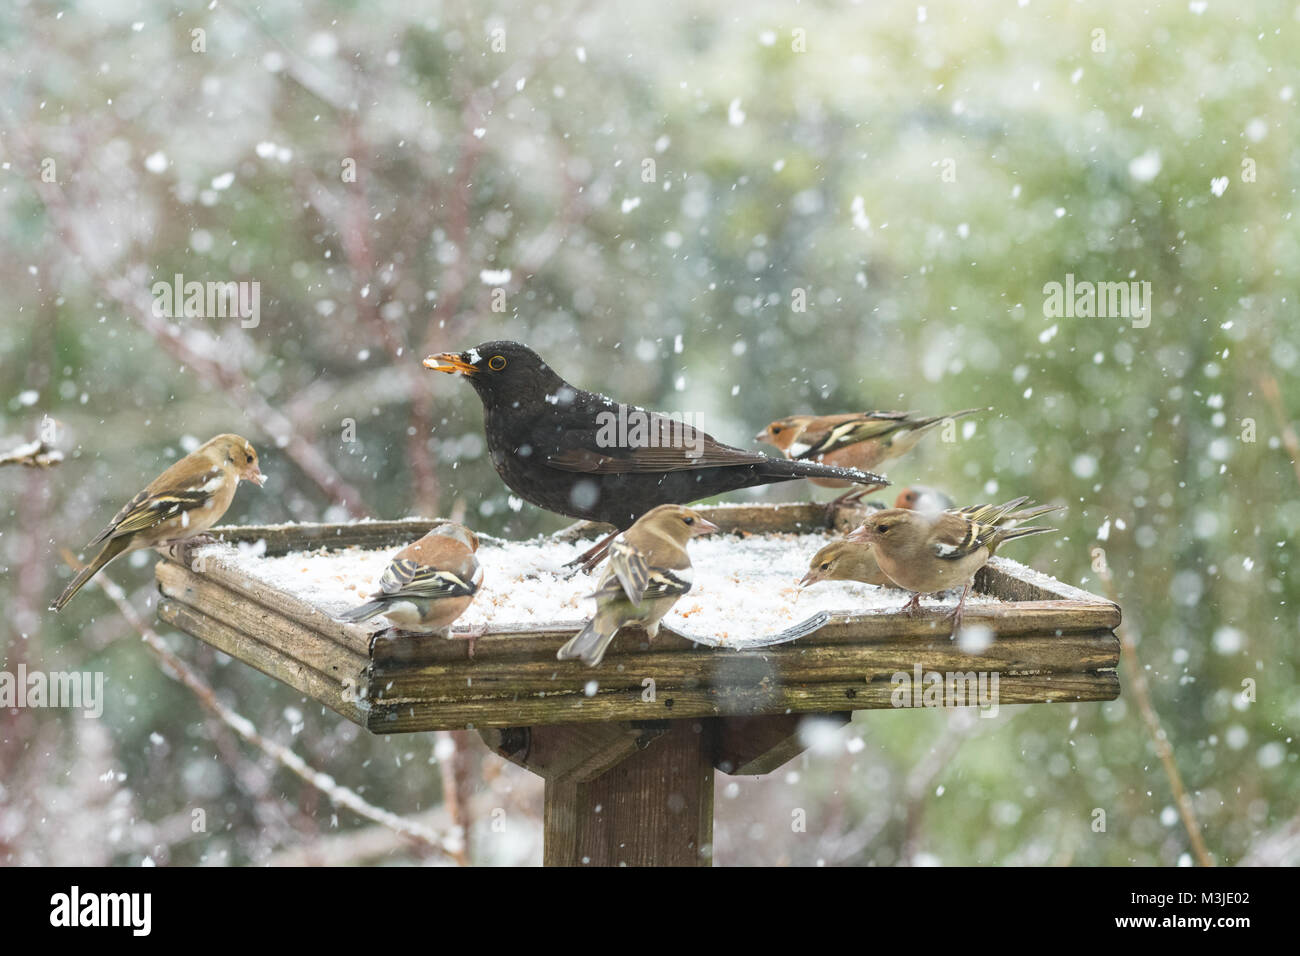 Stirlingshire, Scotland, UK - 11 February 2018: UK weather - busy bird table during a heavy snow shower in Stirlingshire - Stock Image